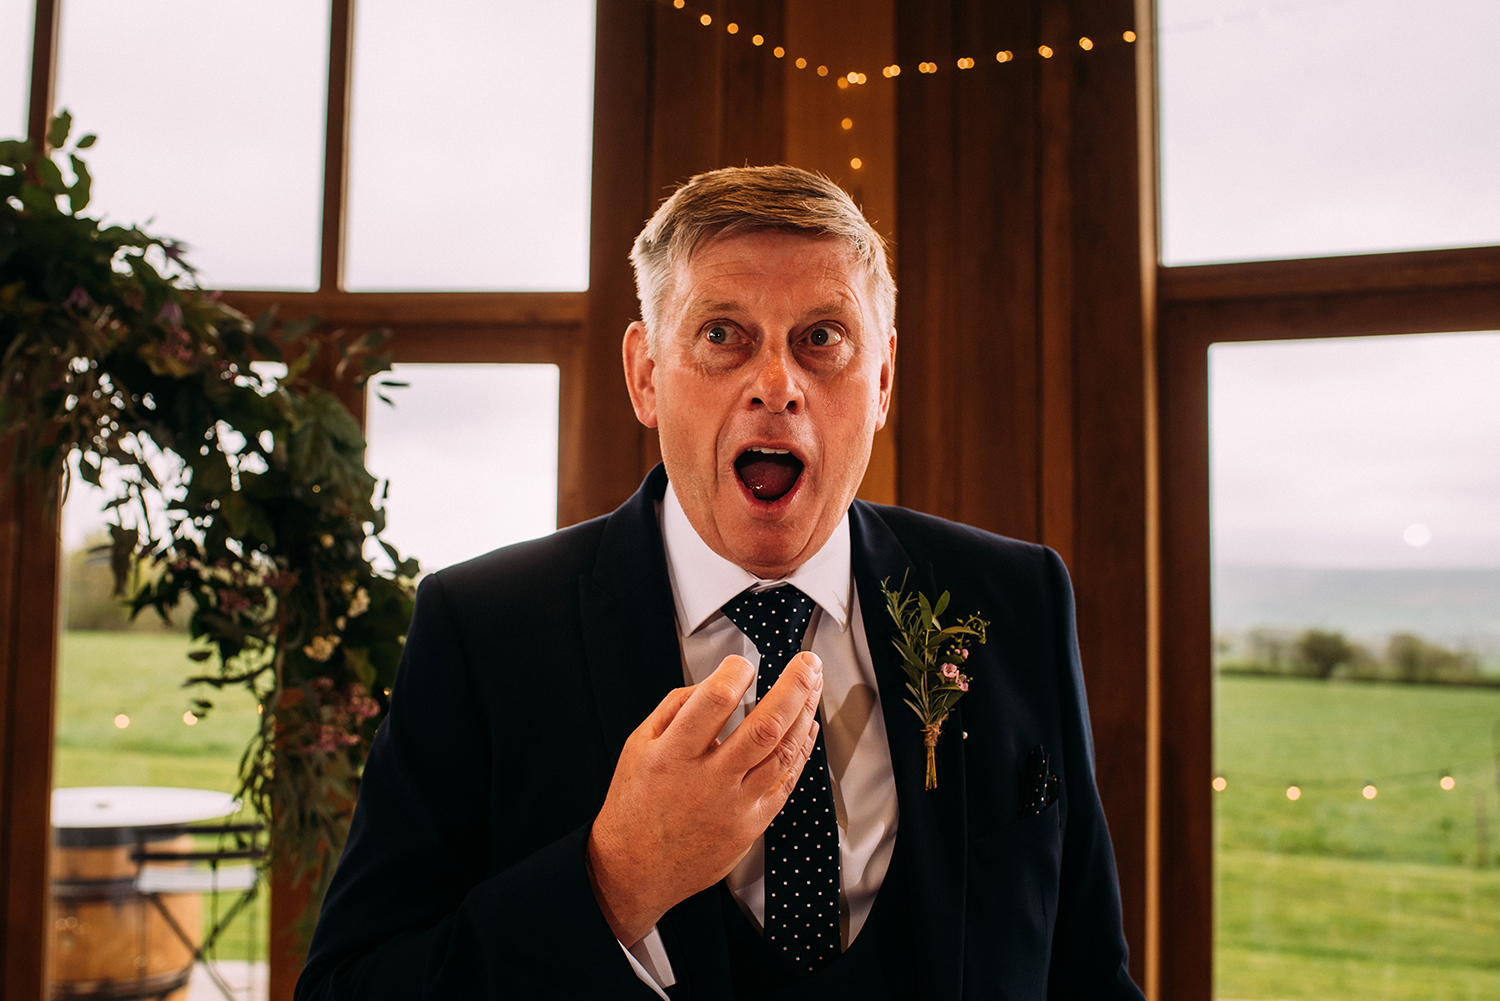 animated father of the bride during his speech